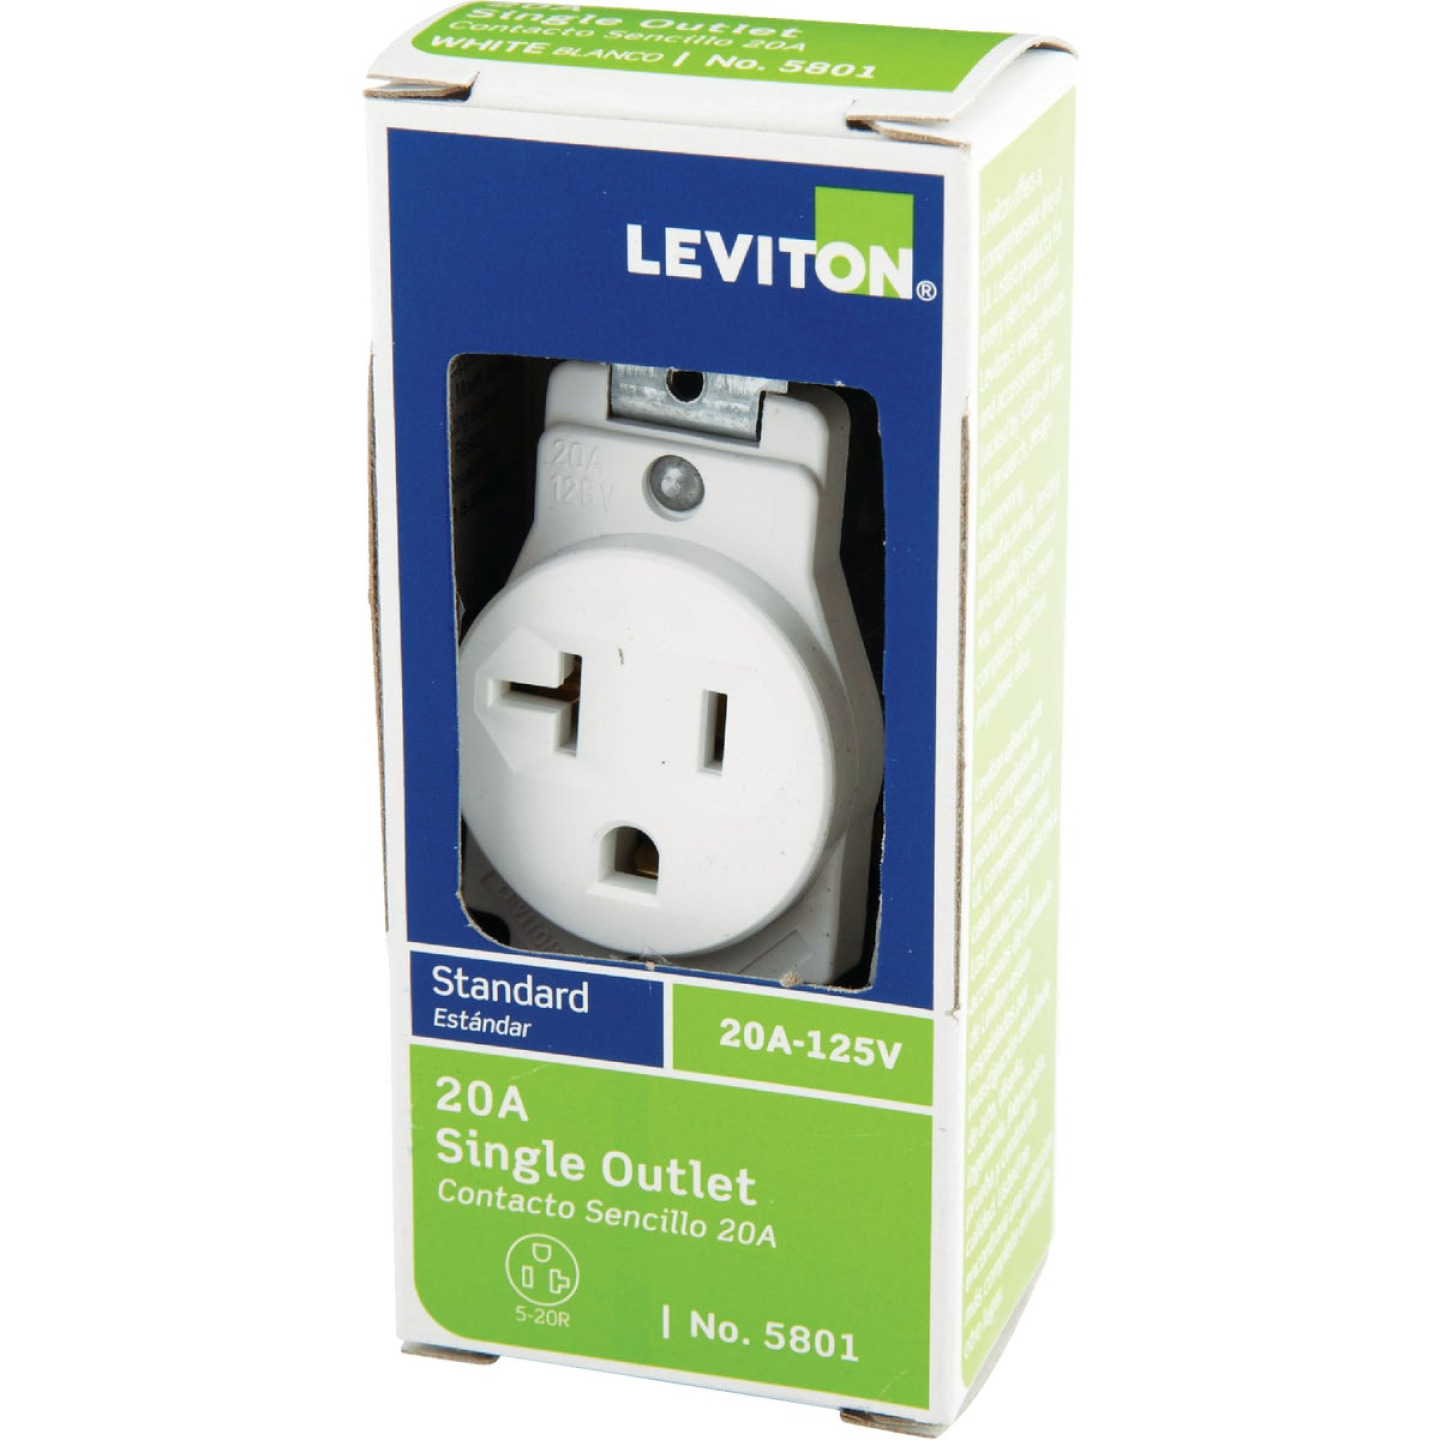 Leviton 20A White Commercial Grade 5-20R Shallow Single Outlet Image 3